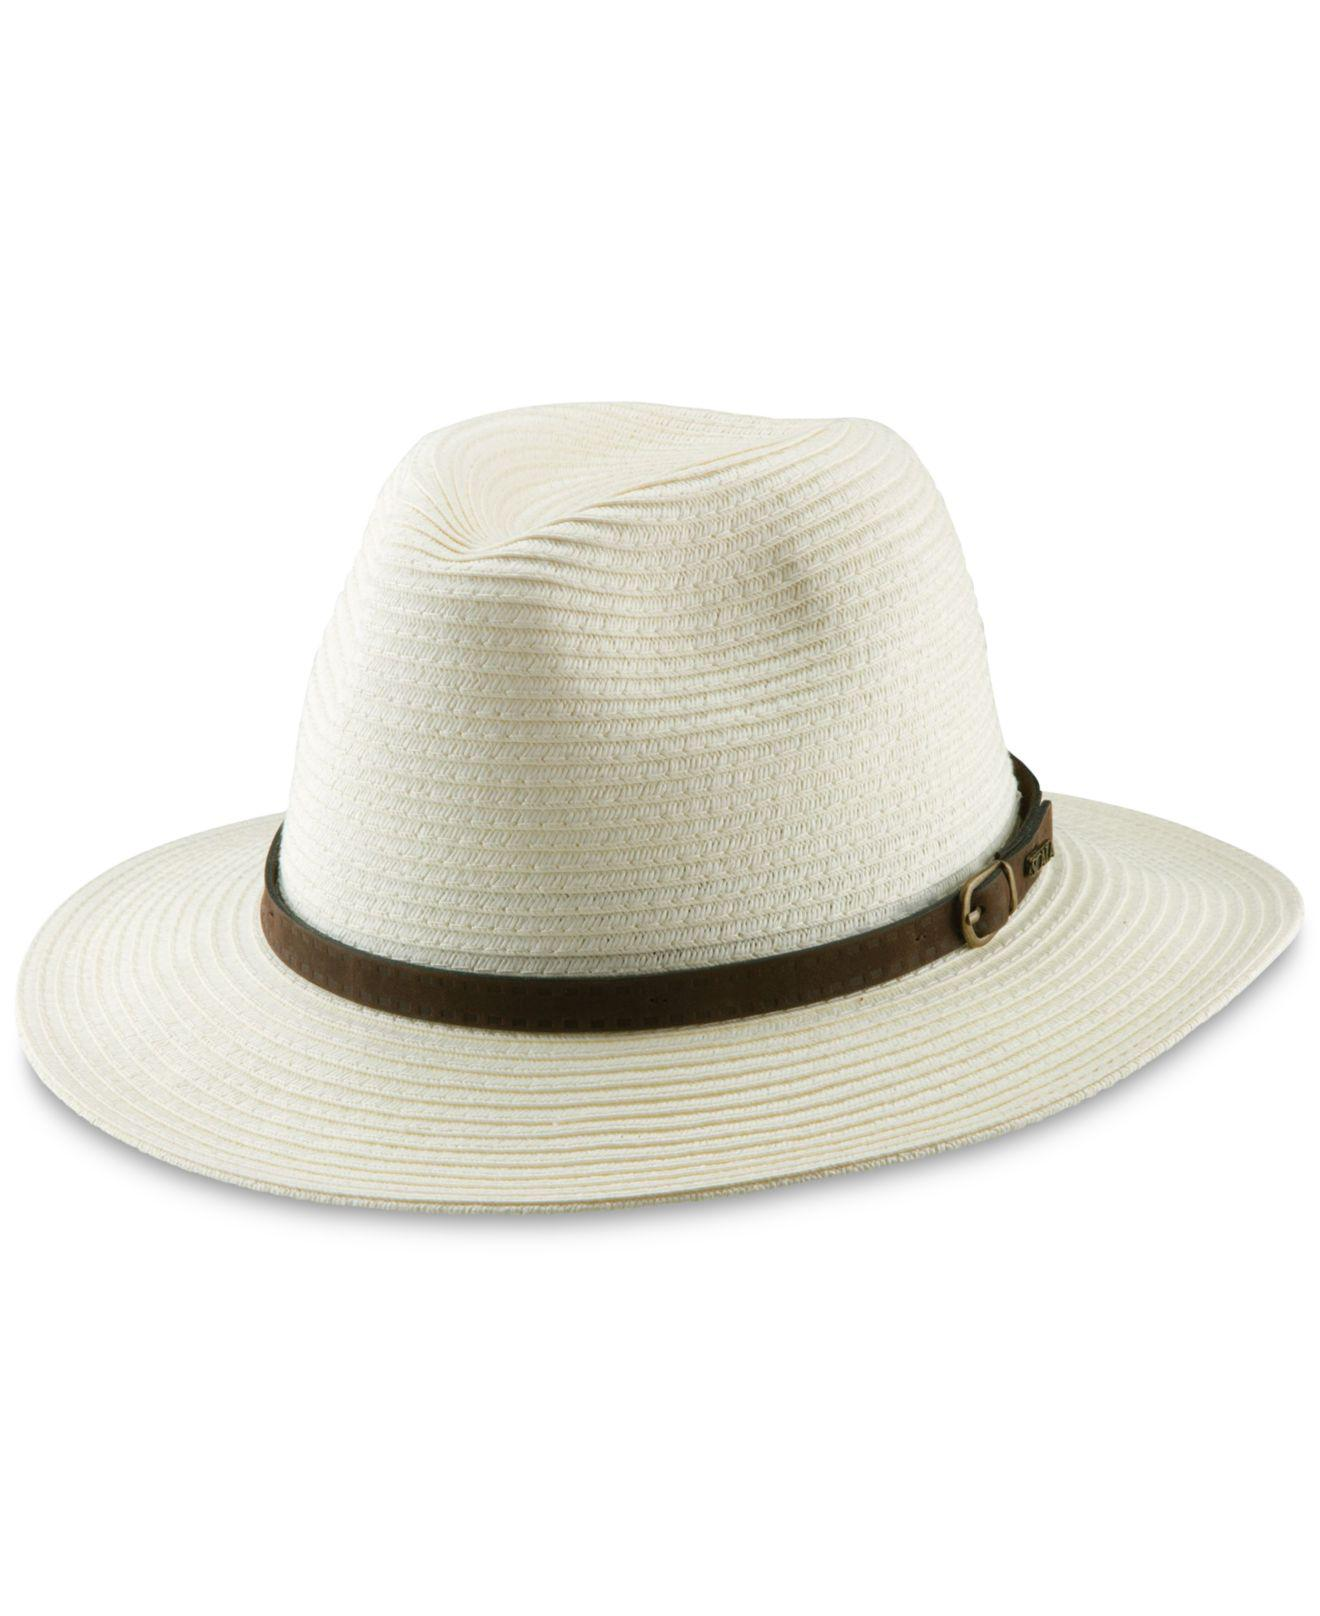 Lyst - Dorfman Pacific Paper Fedora in White for Men 086a5668db04